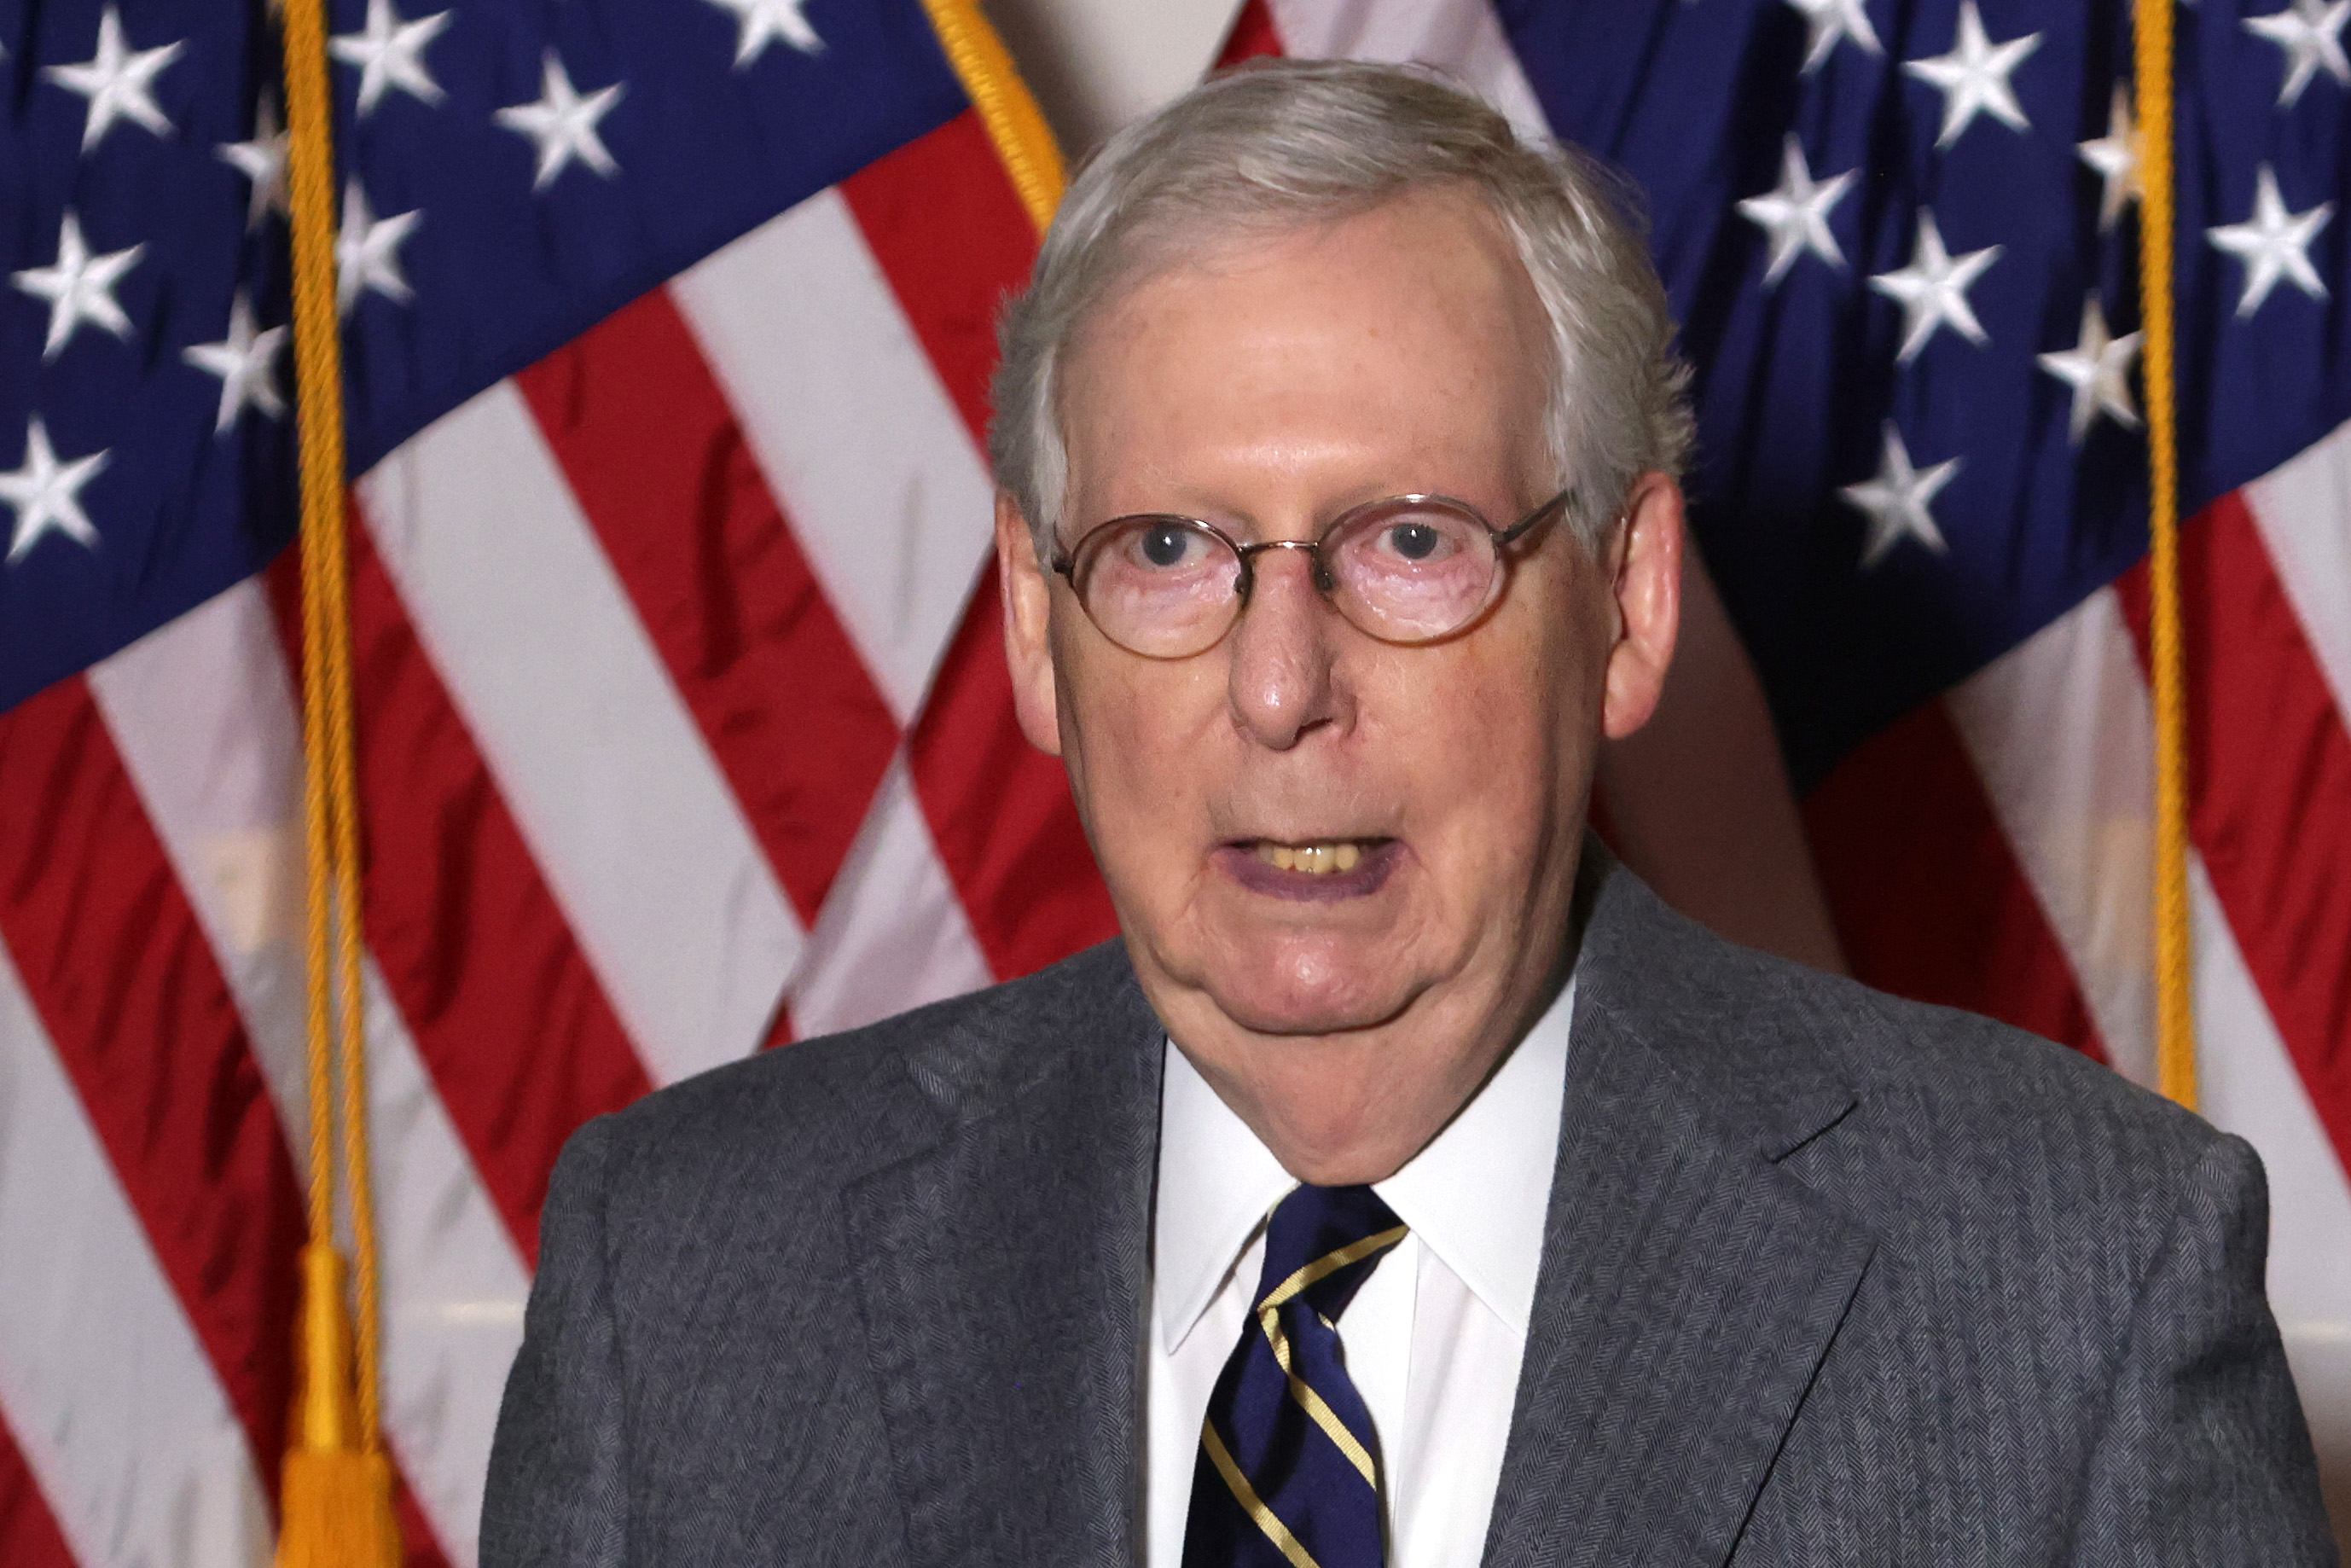 Mitch McConnell Vows 'Orderly' Transfer of Power Will Happen On Time Despite Trump's Refusal to Concede